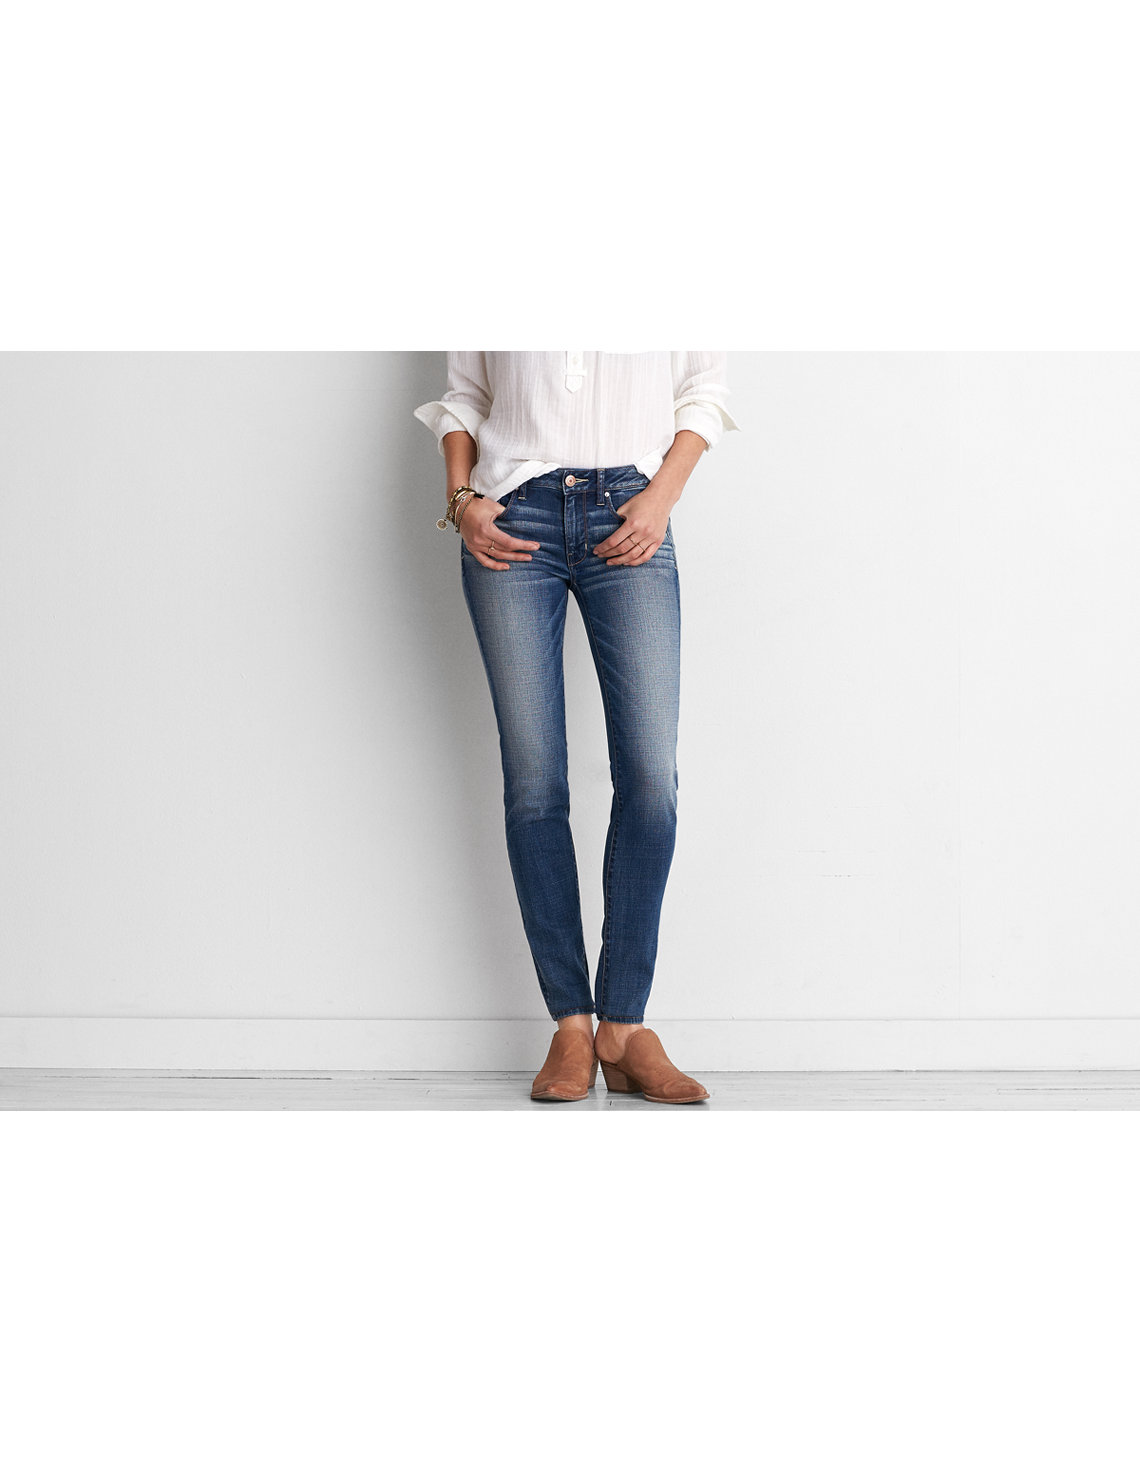 Skinny Jean - Long Jeans For Women American Eagle Outfitters